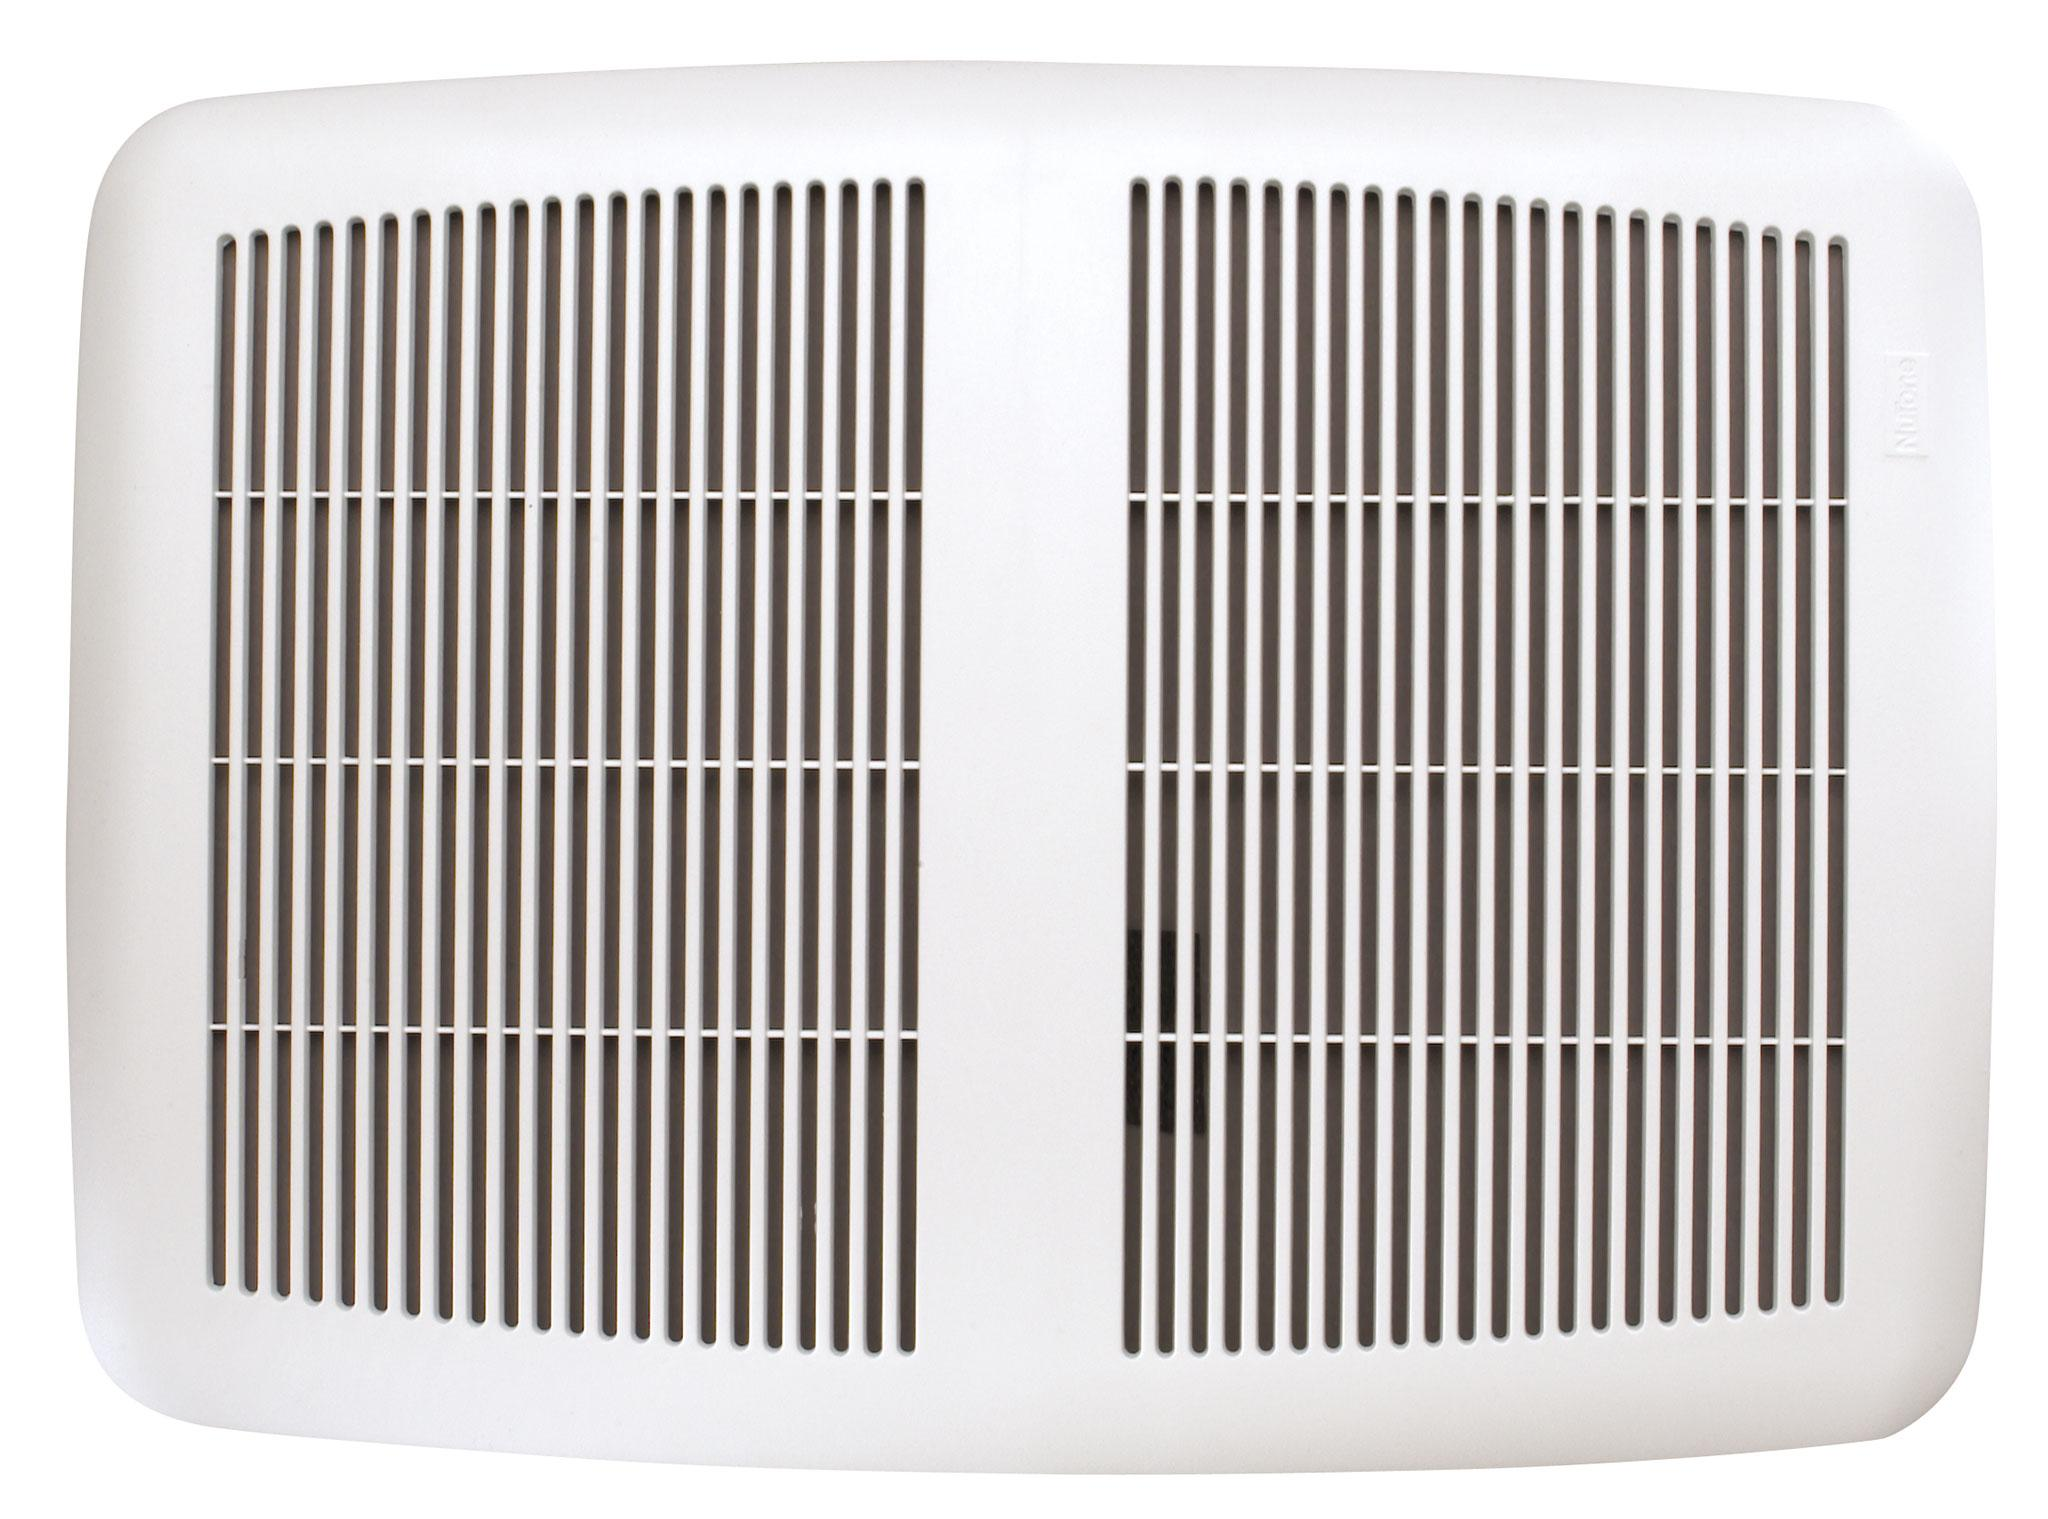 nutone qt300 300 cfm quiet test bath fan bathroom ventilation